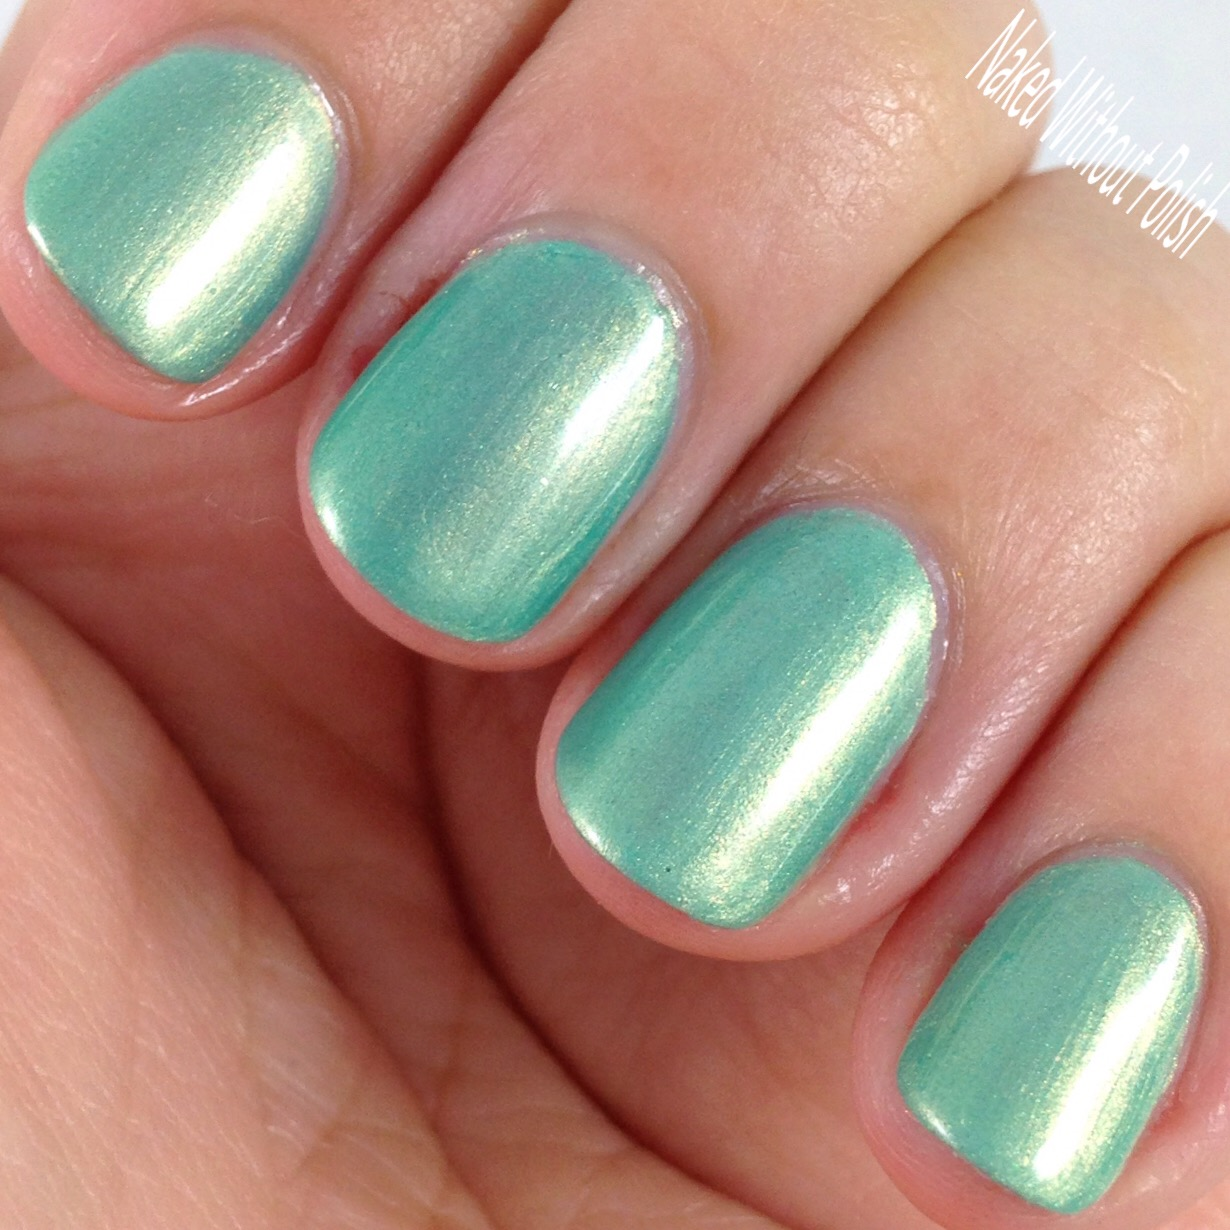 Little-Black-Dress-Nail-Lacquer-Seafoam-Sirens-8